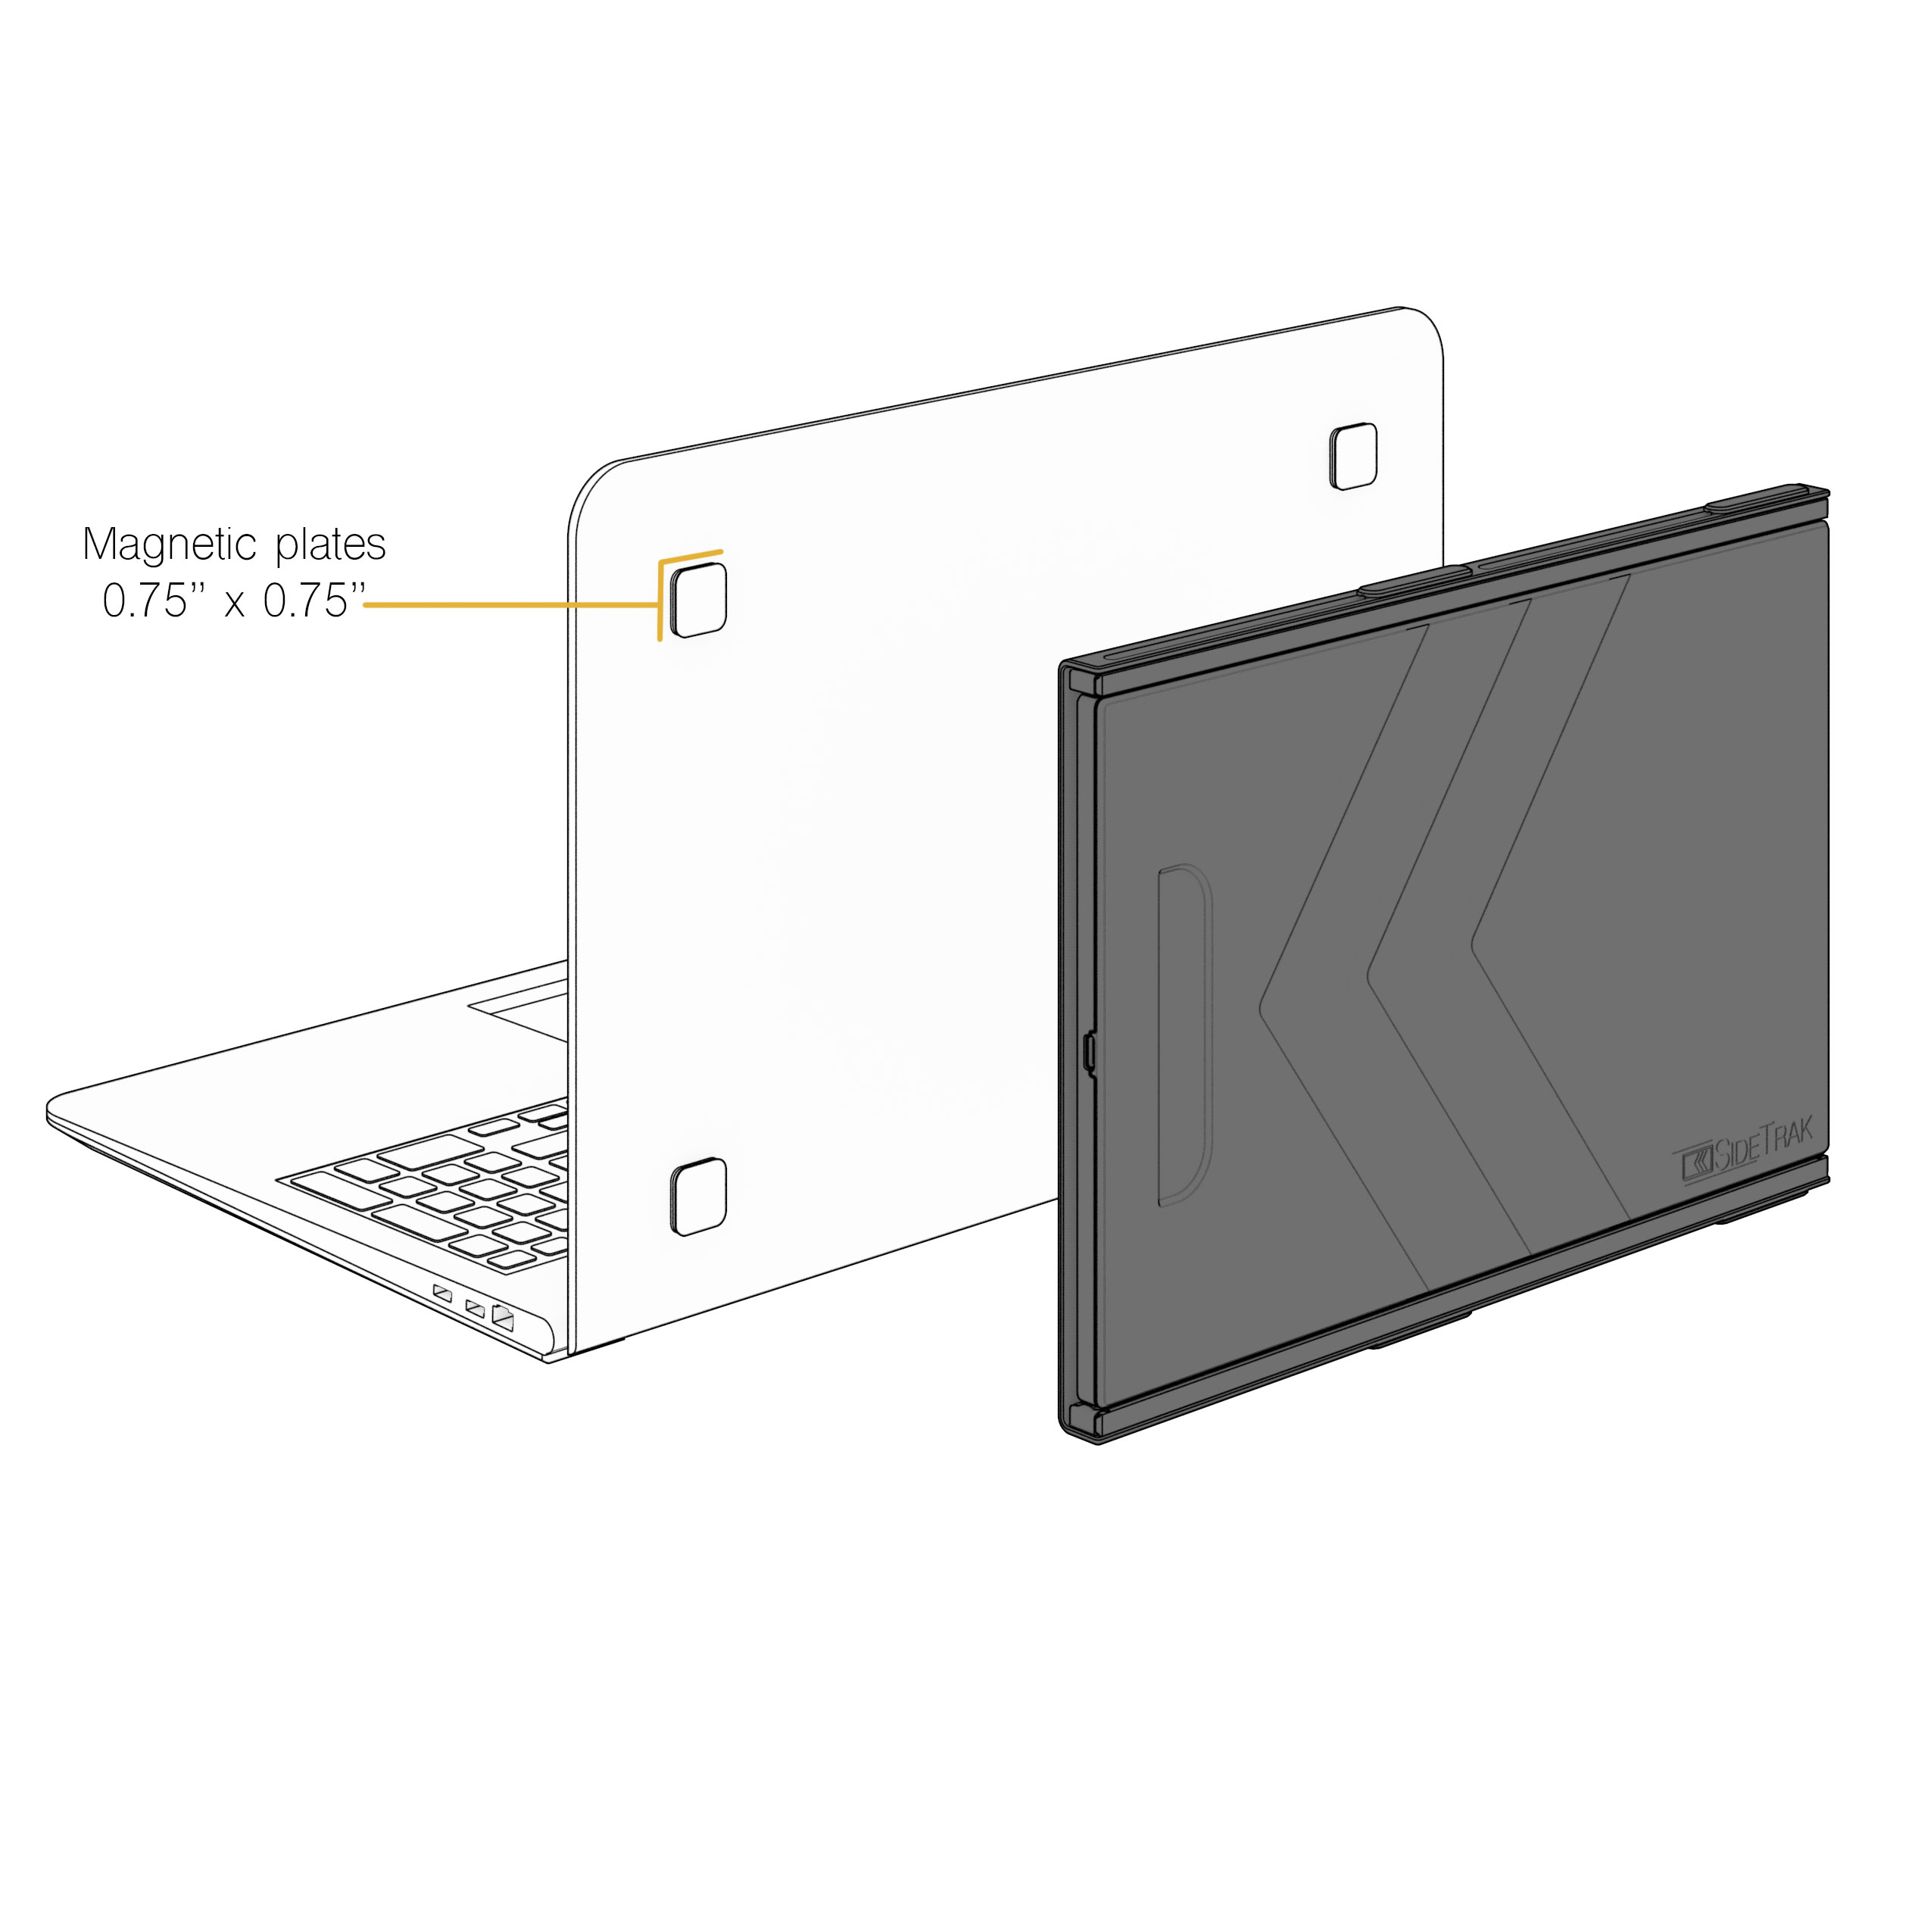 SideTrak portable laptop monitor attaches with device safe magnetic plates